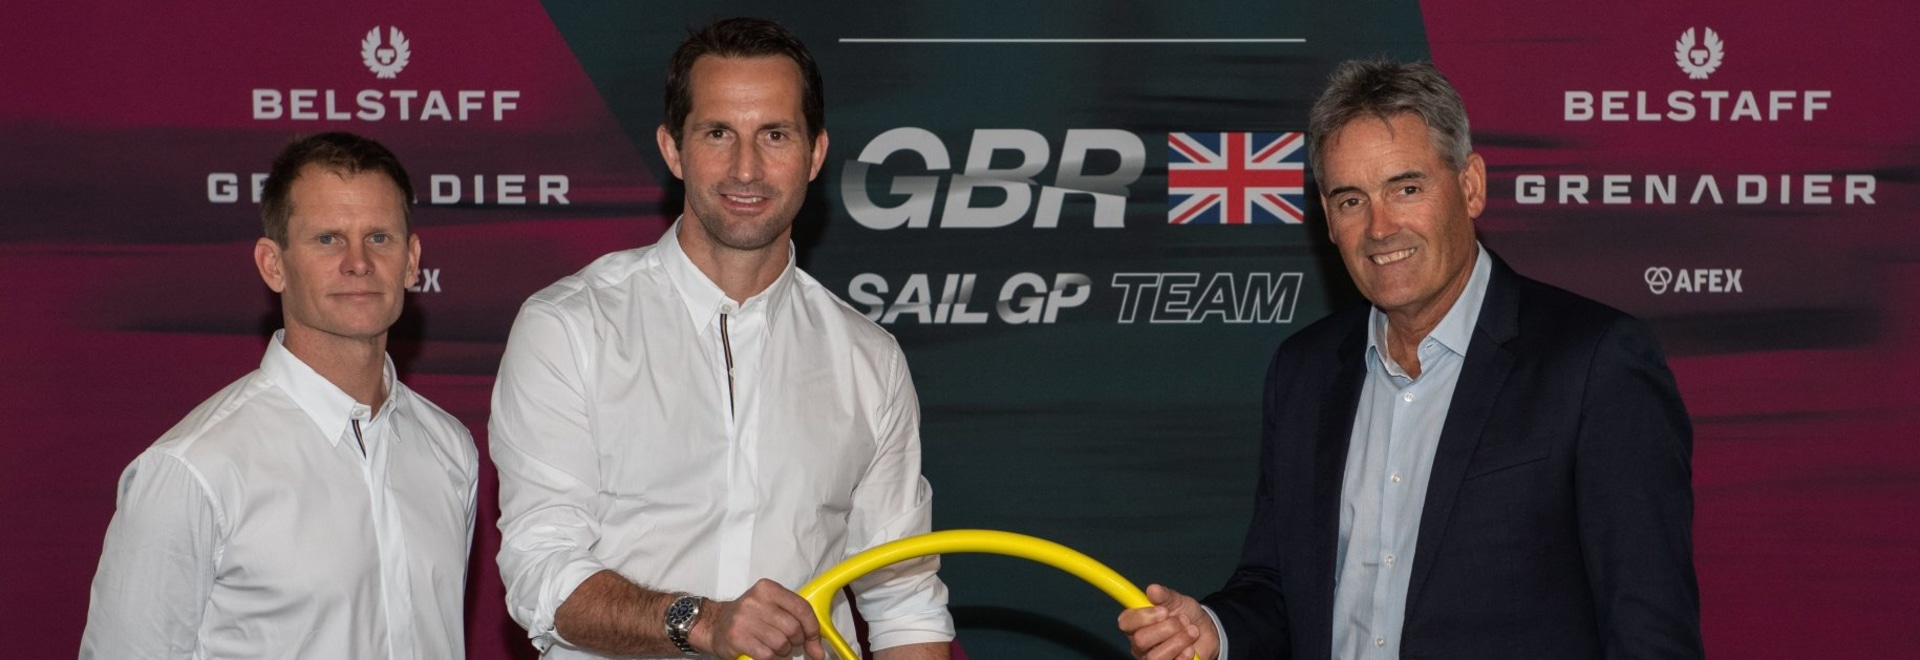 Chris Draper, Ben Ainslie and Russell Coutts (L to R) at the announcement event in London.